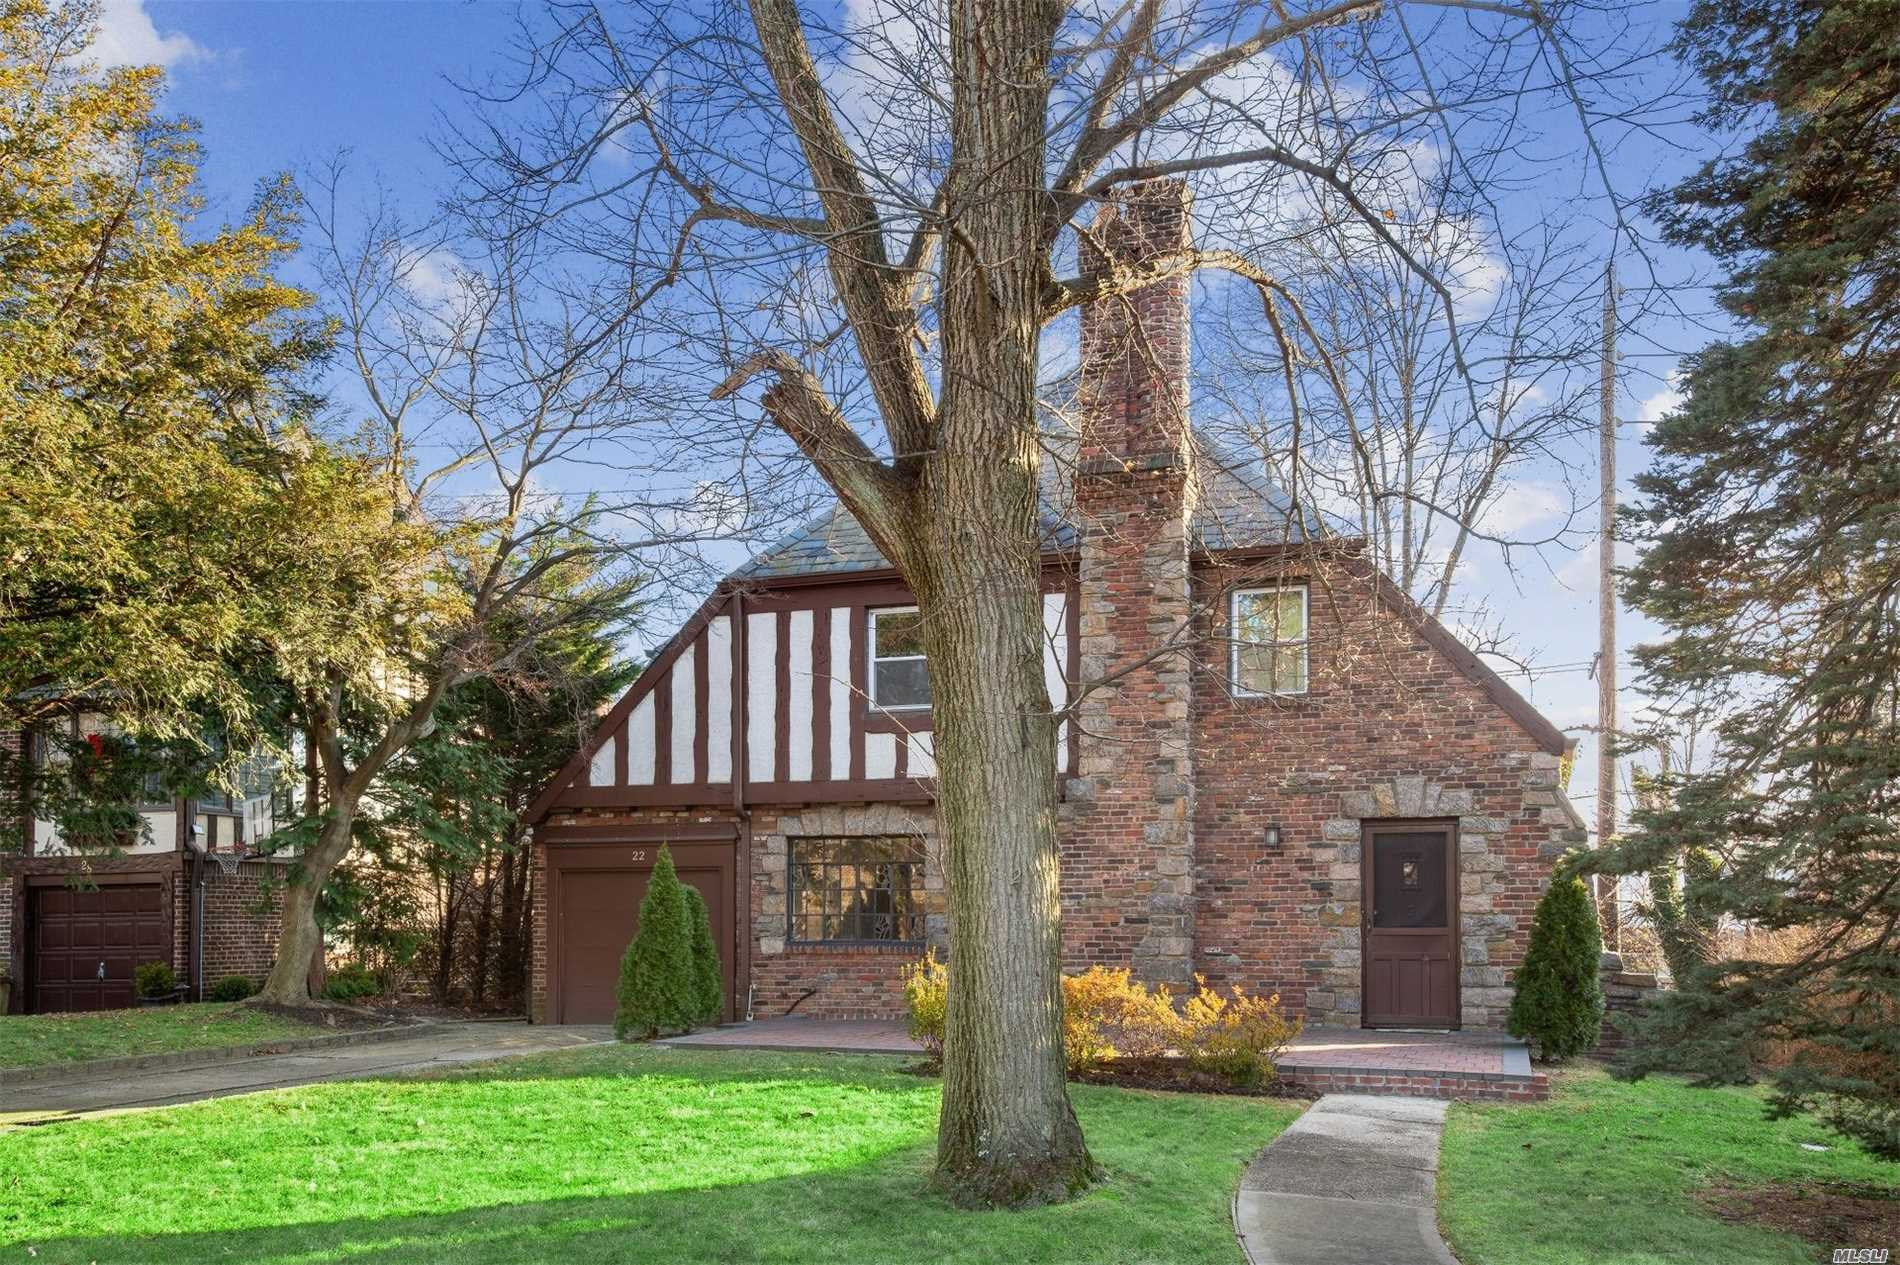 This Classic Brick & Stone Tudor Is Waiting For Your Personal Touch. Slate Roof, Orig Woodwork, Built Ins, Stone Fireplace & Wood Floors Throughout. 4 Bedrooms, 3 Baths, Family Room,  Walk Up Attic, 70X 132 Lot& Brick Patio All Add To This Homes Charm. Close To All..Shopping, Schools, 4 Blocks To Lirr. Munsey Park Elementary School